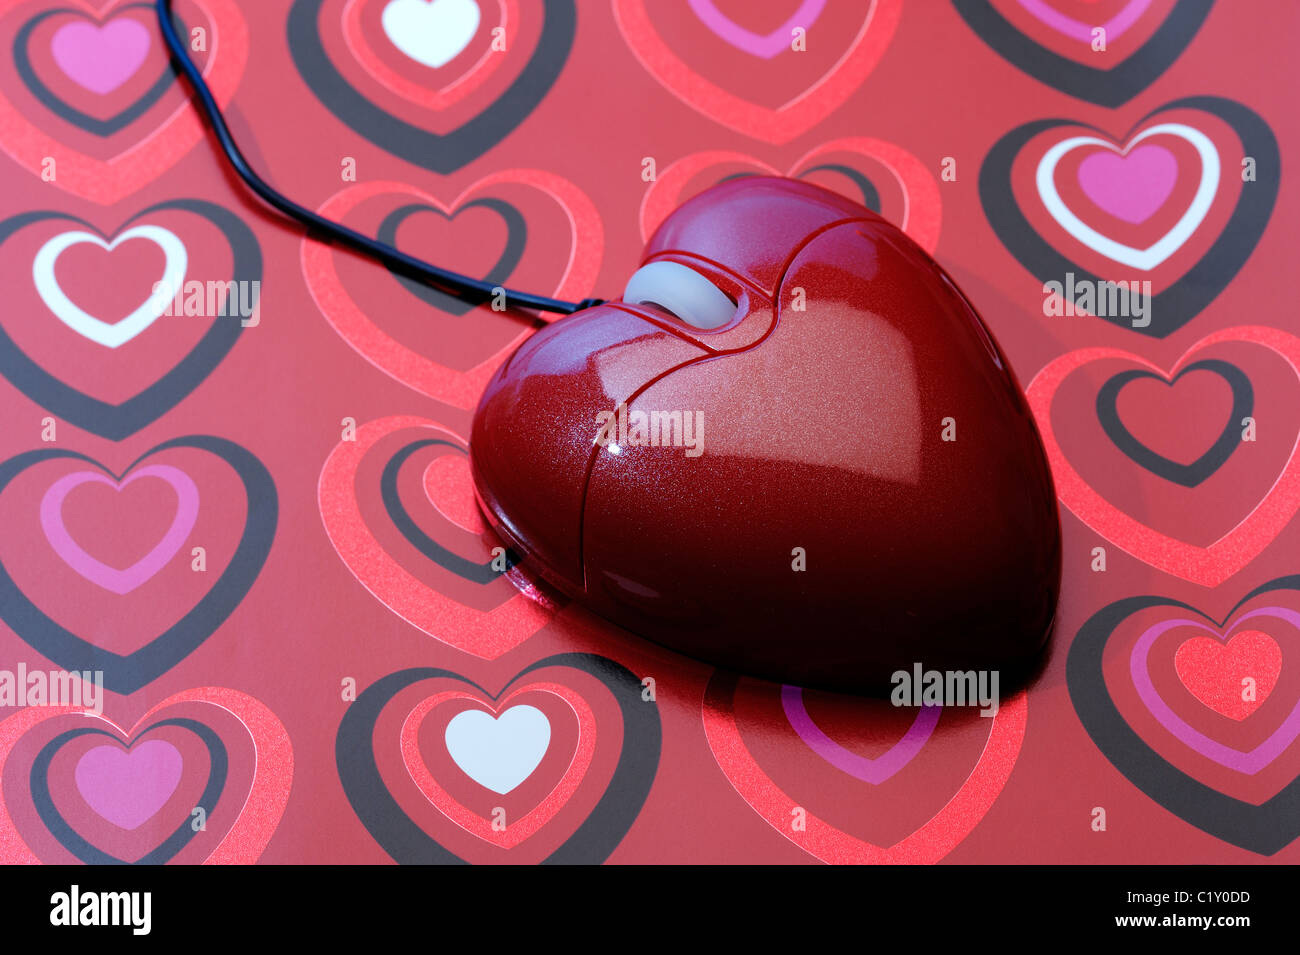 Heart shaped computer mouse - Stock Image